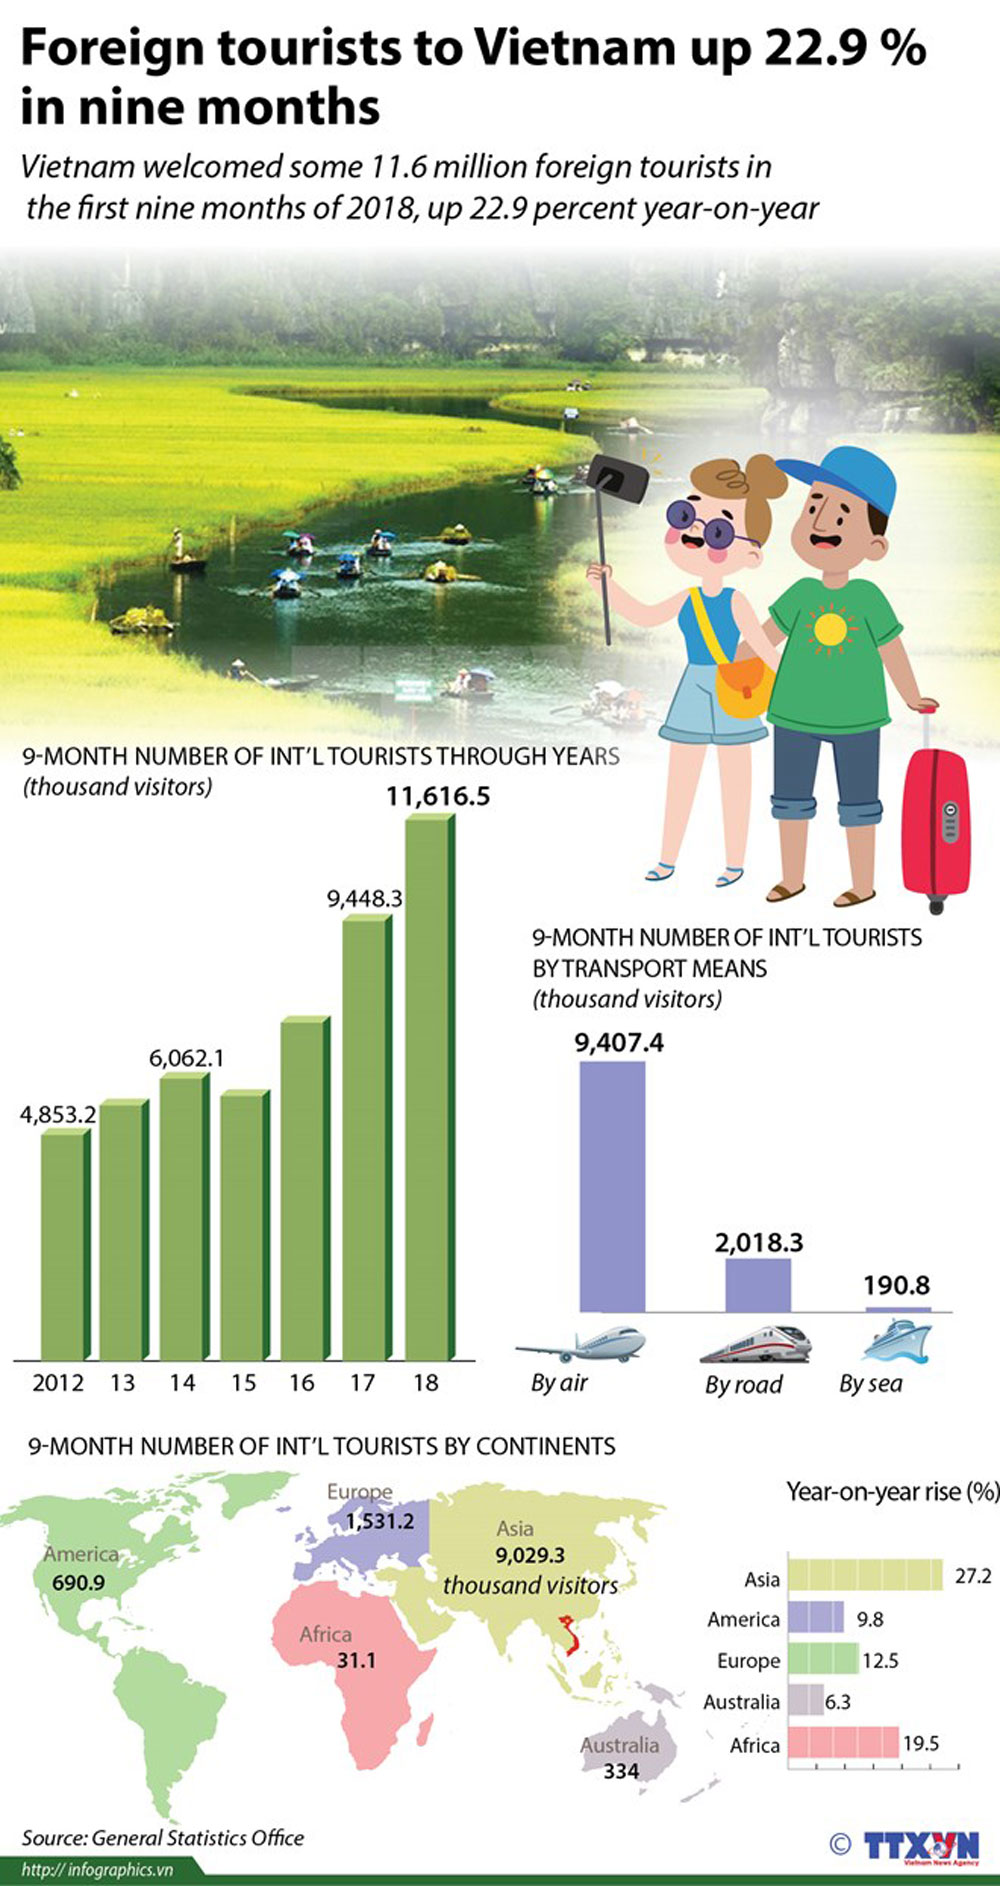 Foreign tourists, Vietnam, nine months, popular destination, year on year increase, economic sector